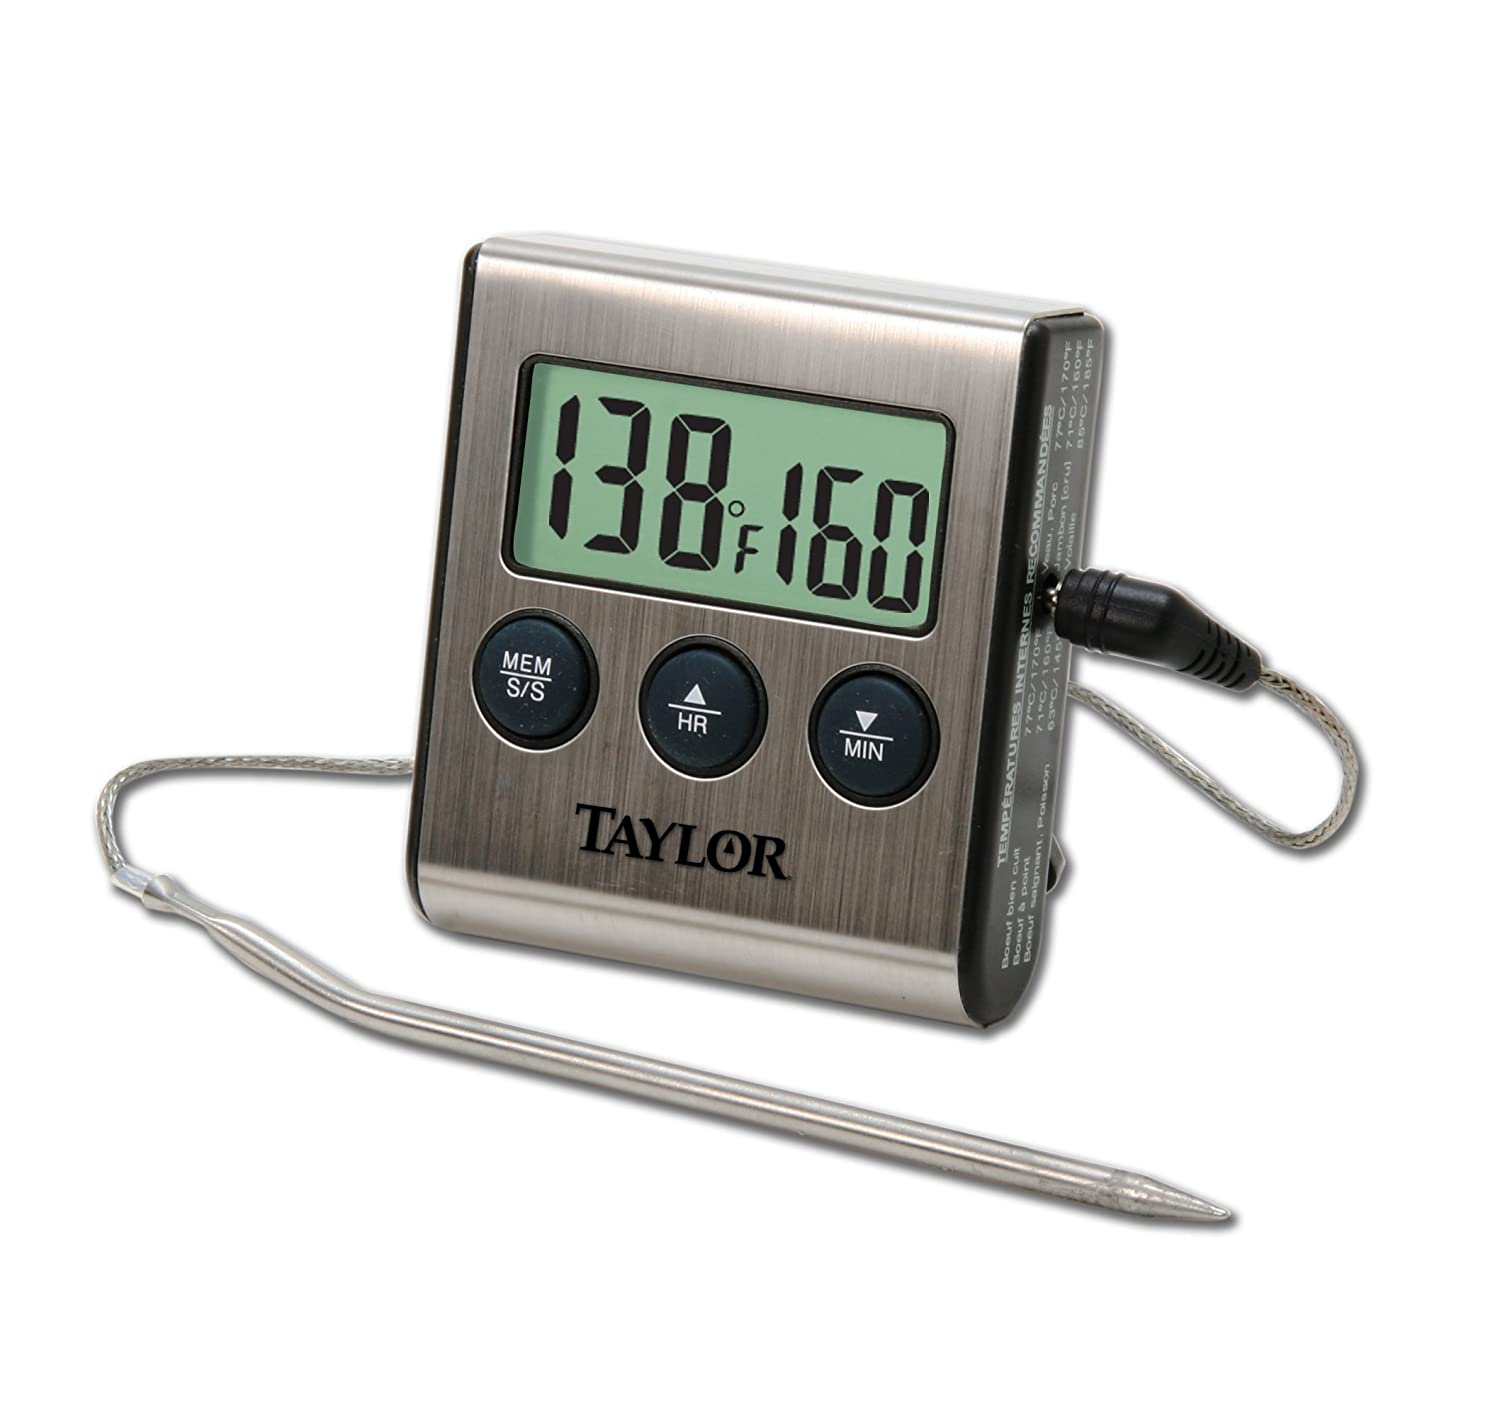 taylor precision products digital cooking roasting